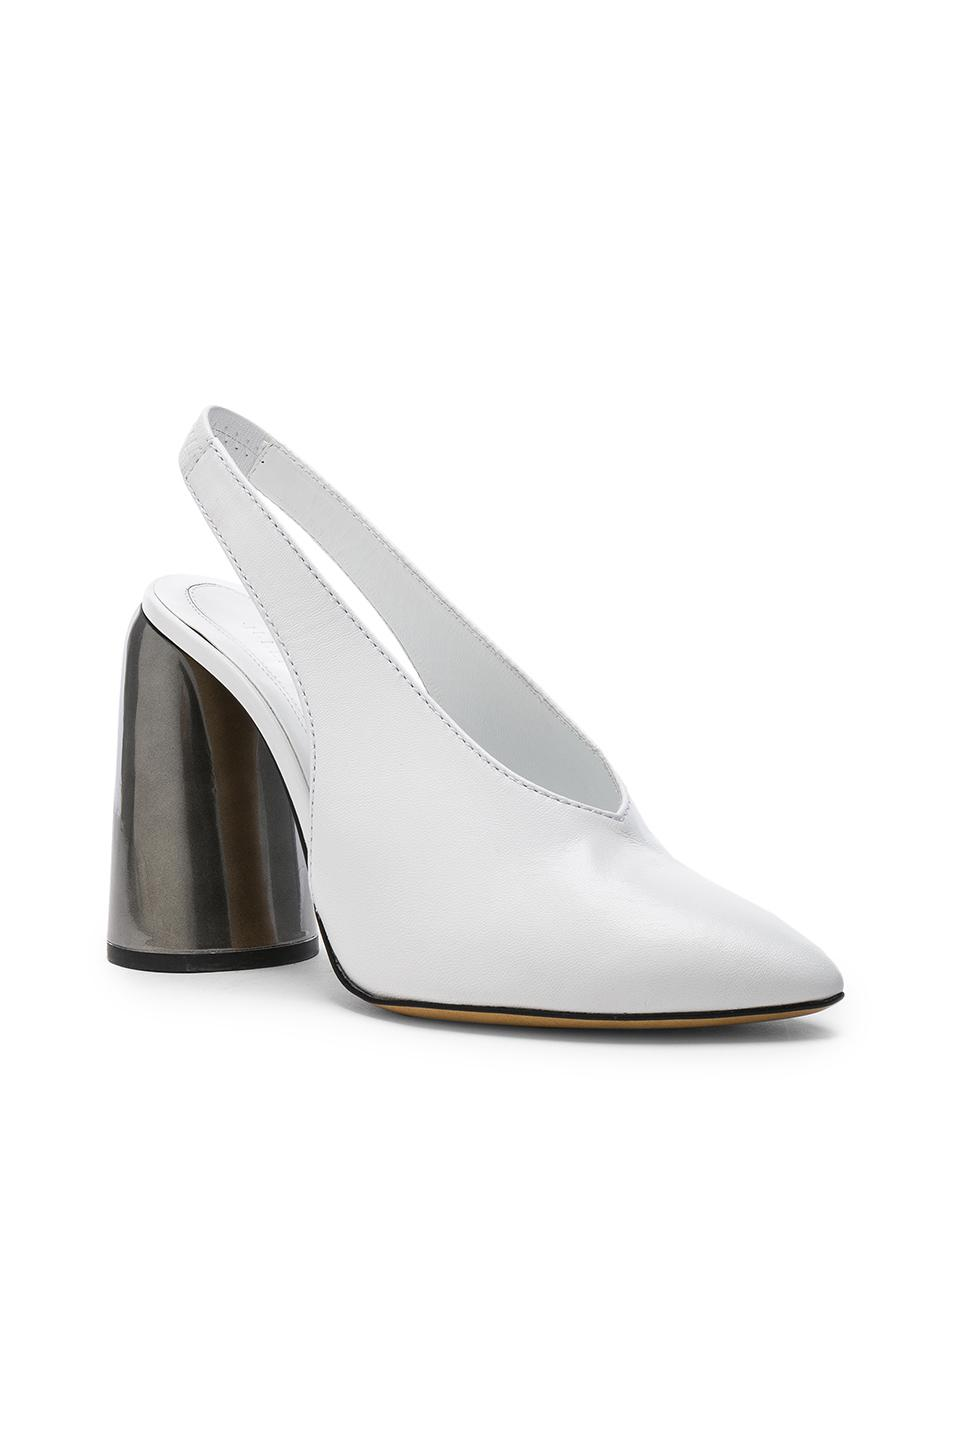 Leather Slingback Pumps - White Ellery